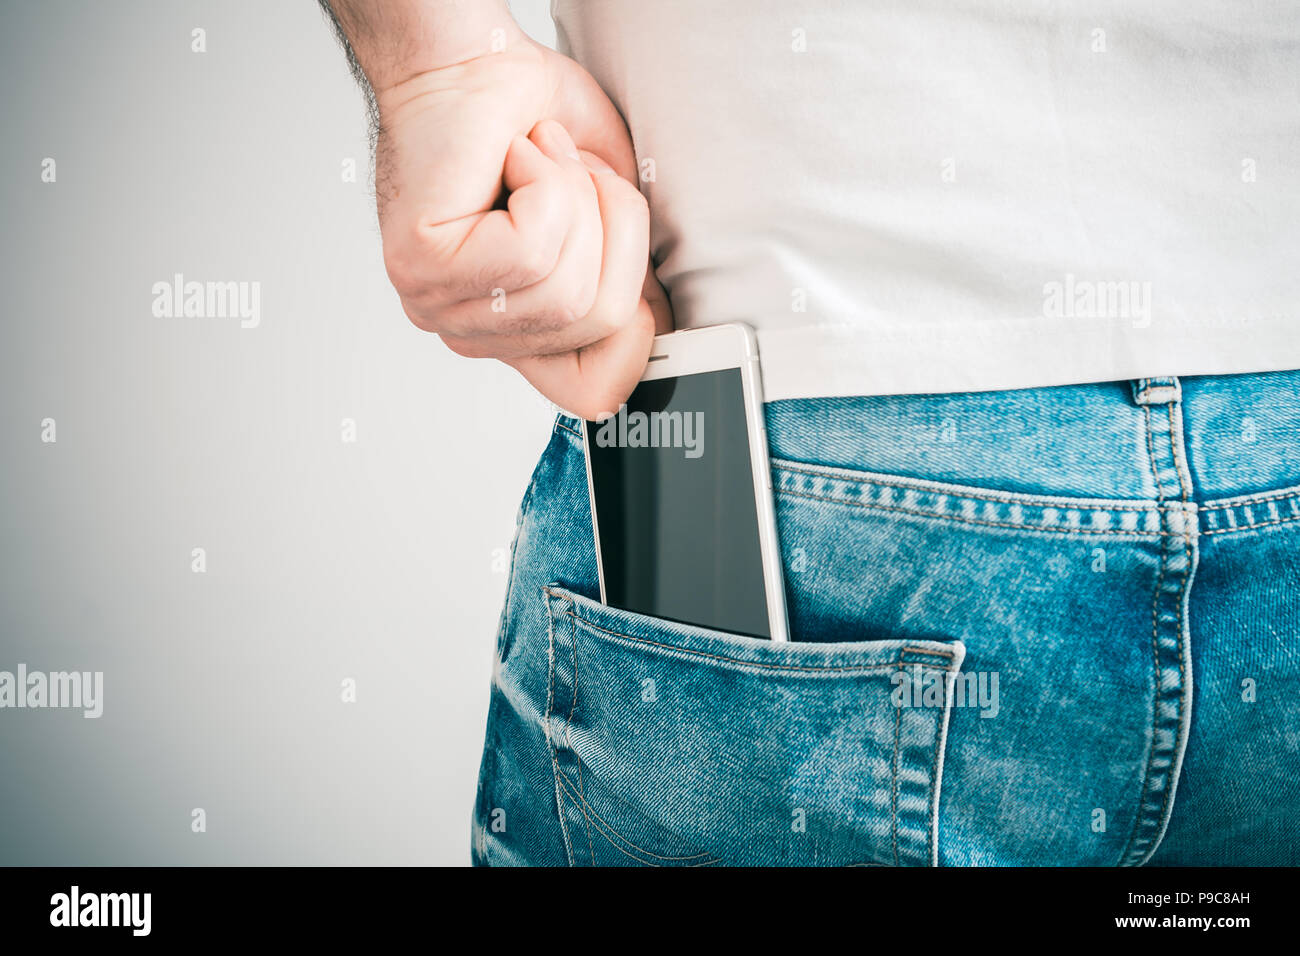 Male Hand Grabbing A Smartphone In The Left Back Pocket Of A Jeans Trouser - Stock Image